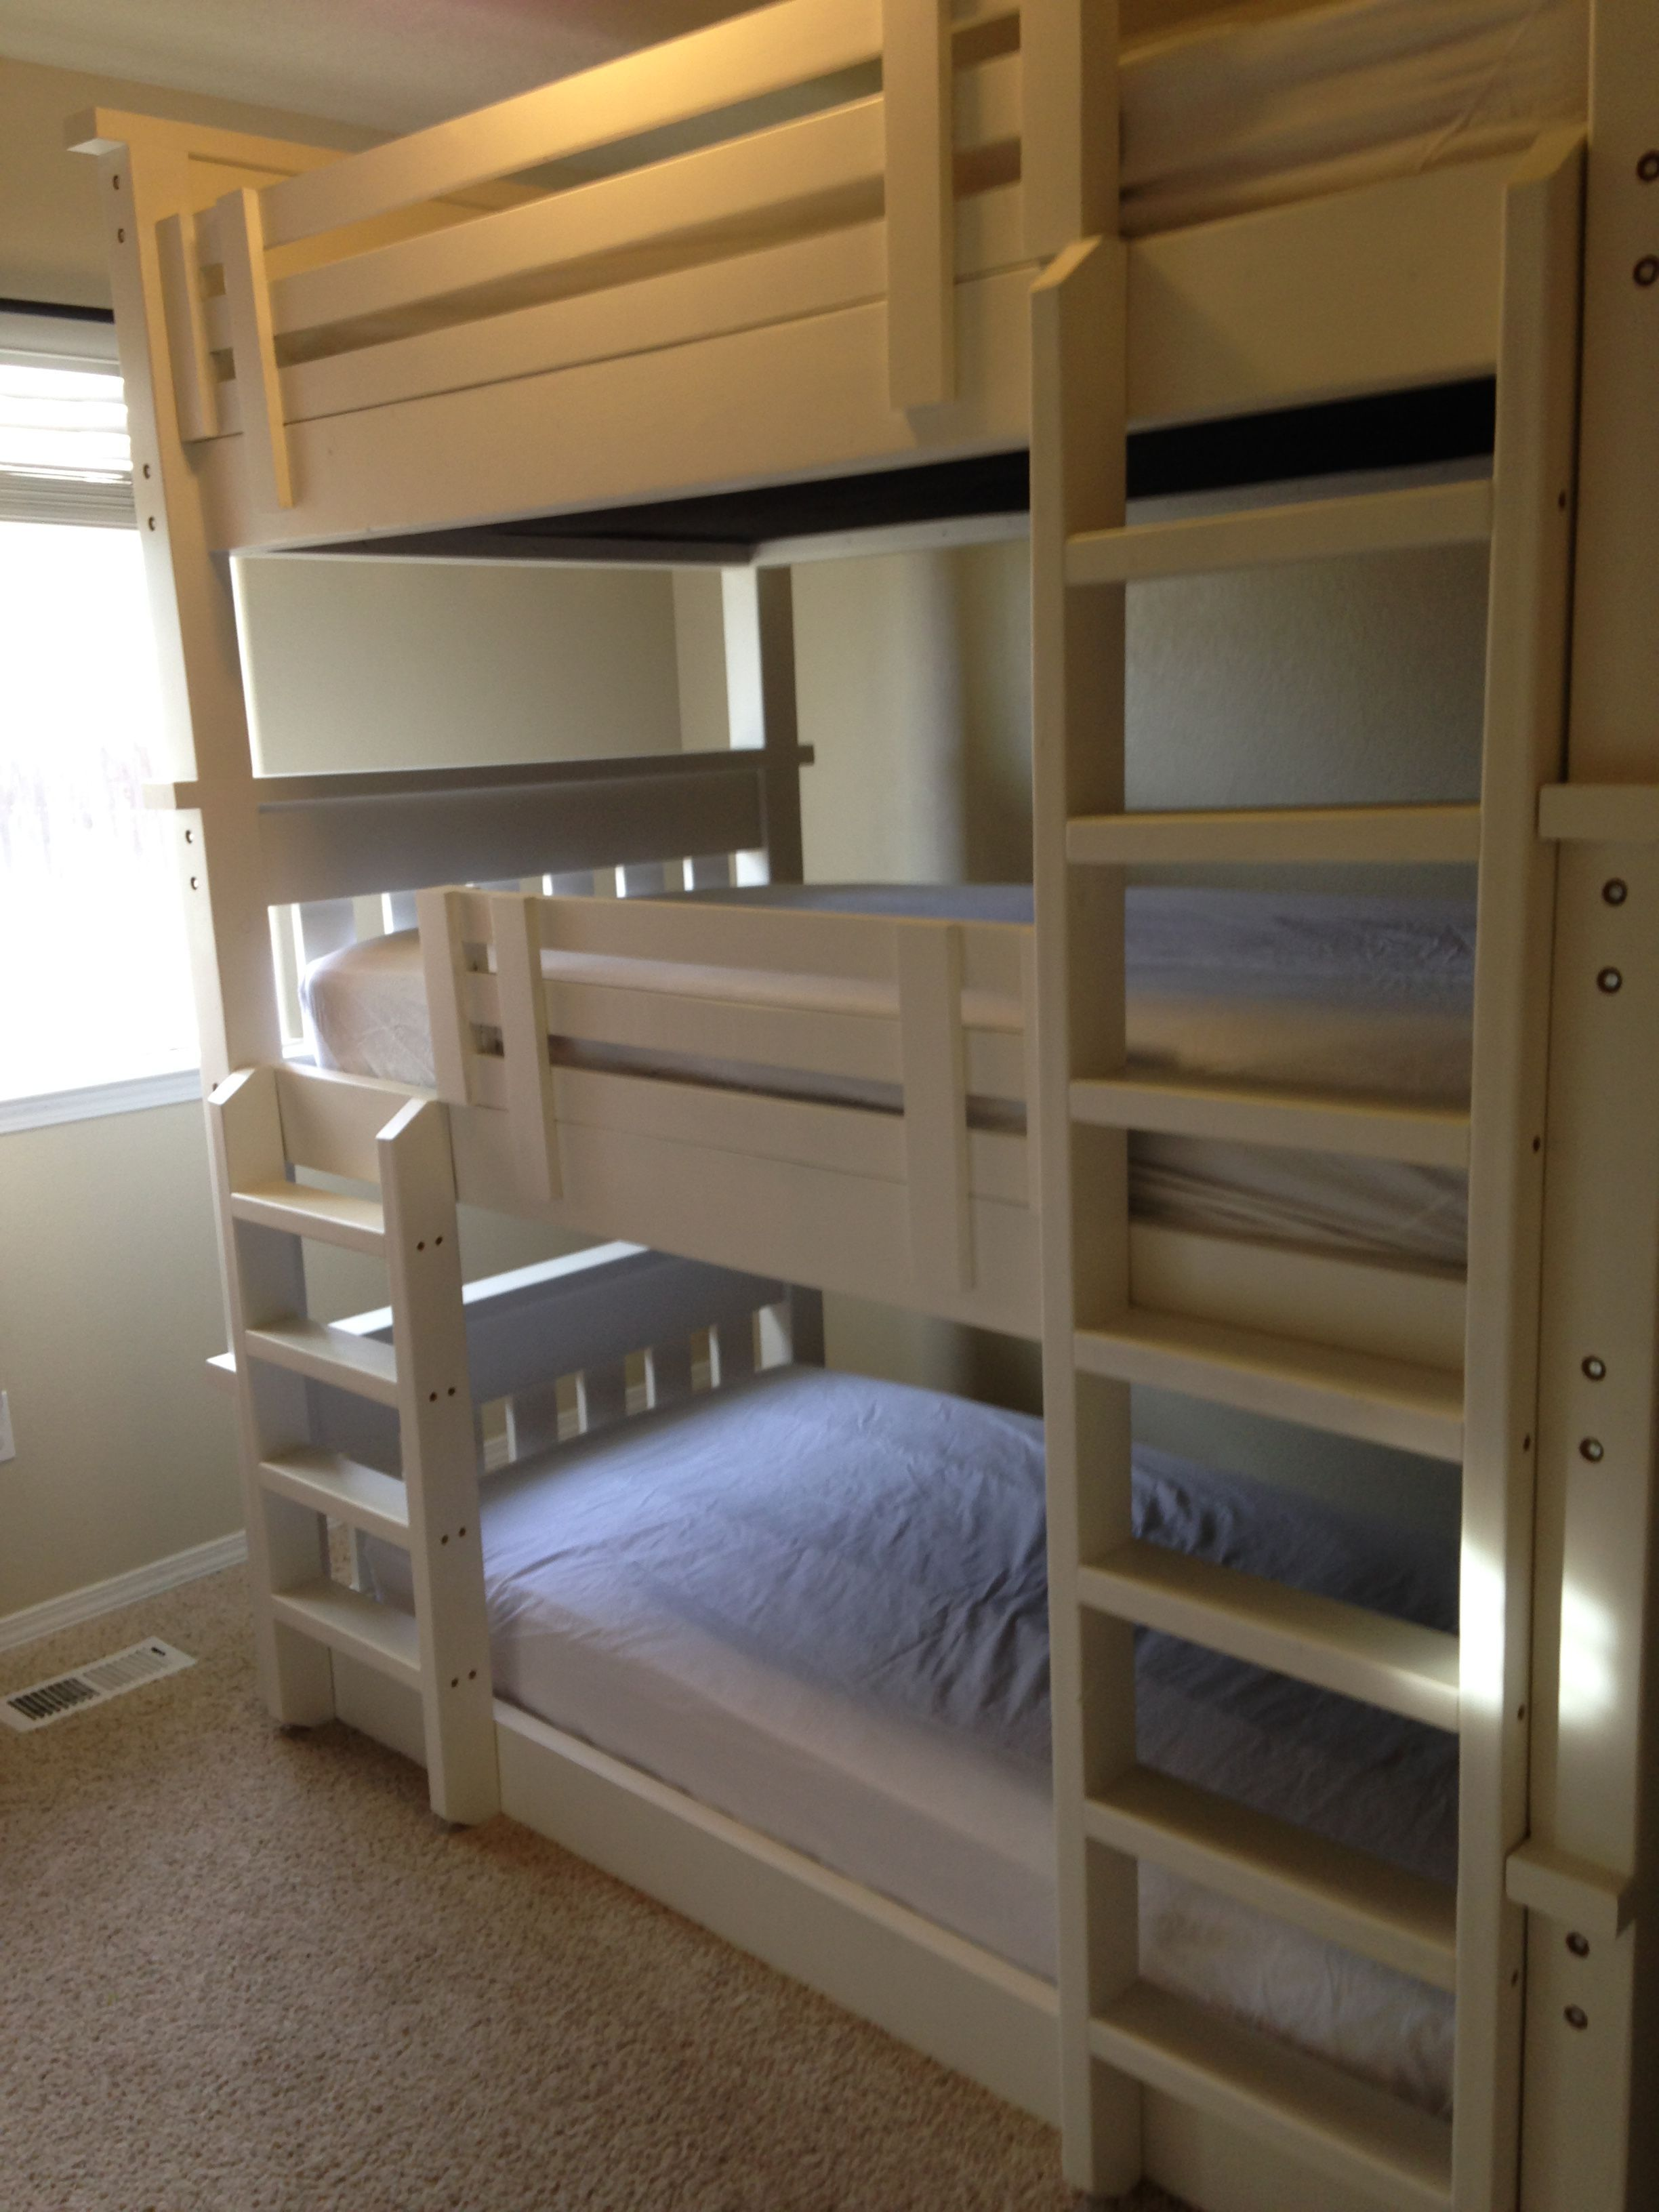 5 wonderful ideas of triple bunk beds for your kids on wonderful ideas of bunk beds for your kids bedroom id=38347